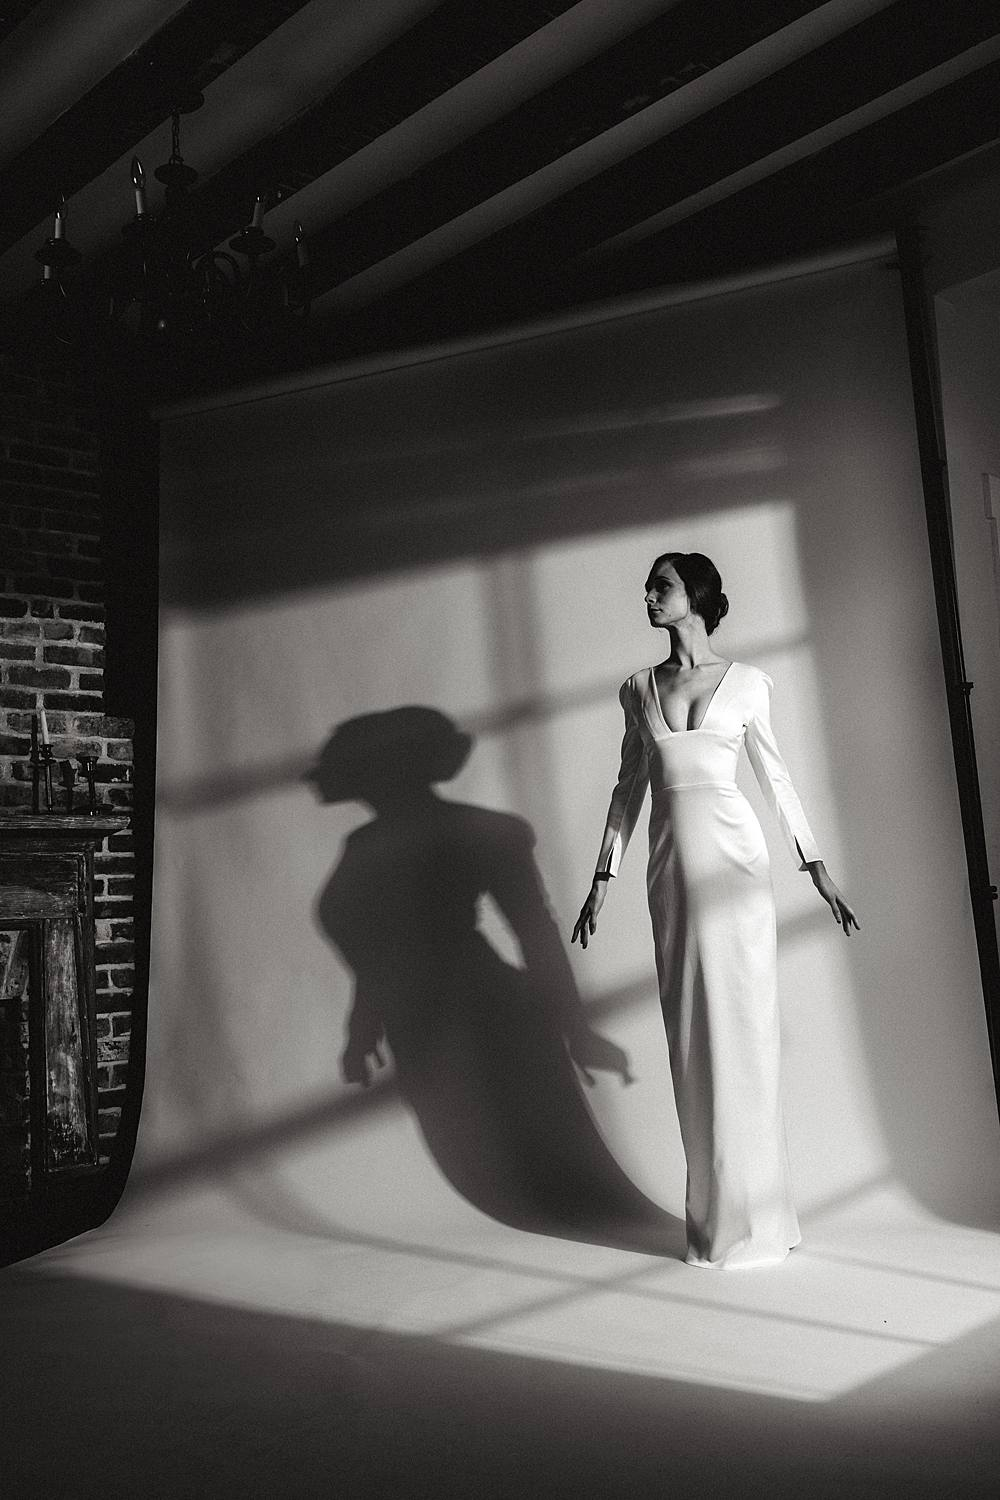 charleston sc studio bridal portrait black and white inspired by 1960s vogue glam fashion by brian d smith photgraphy